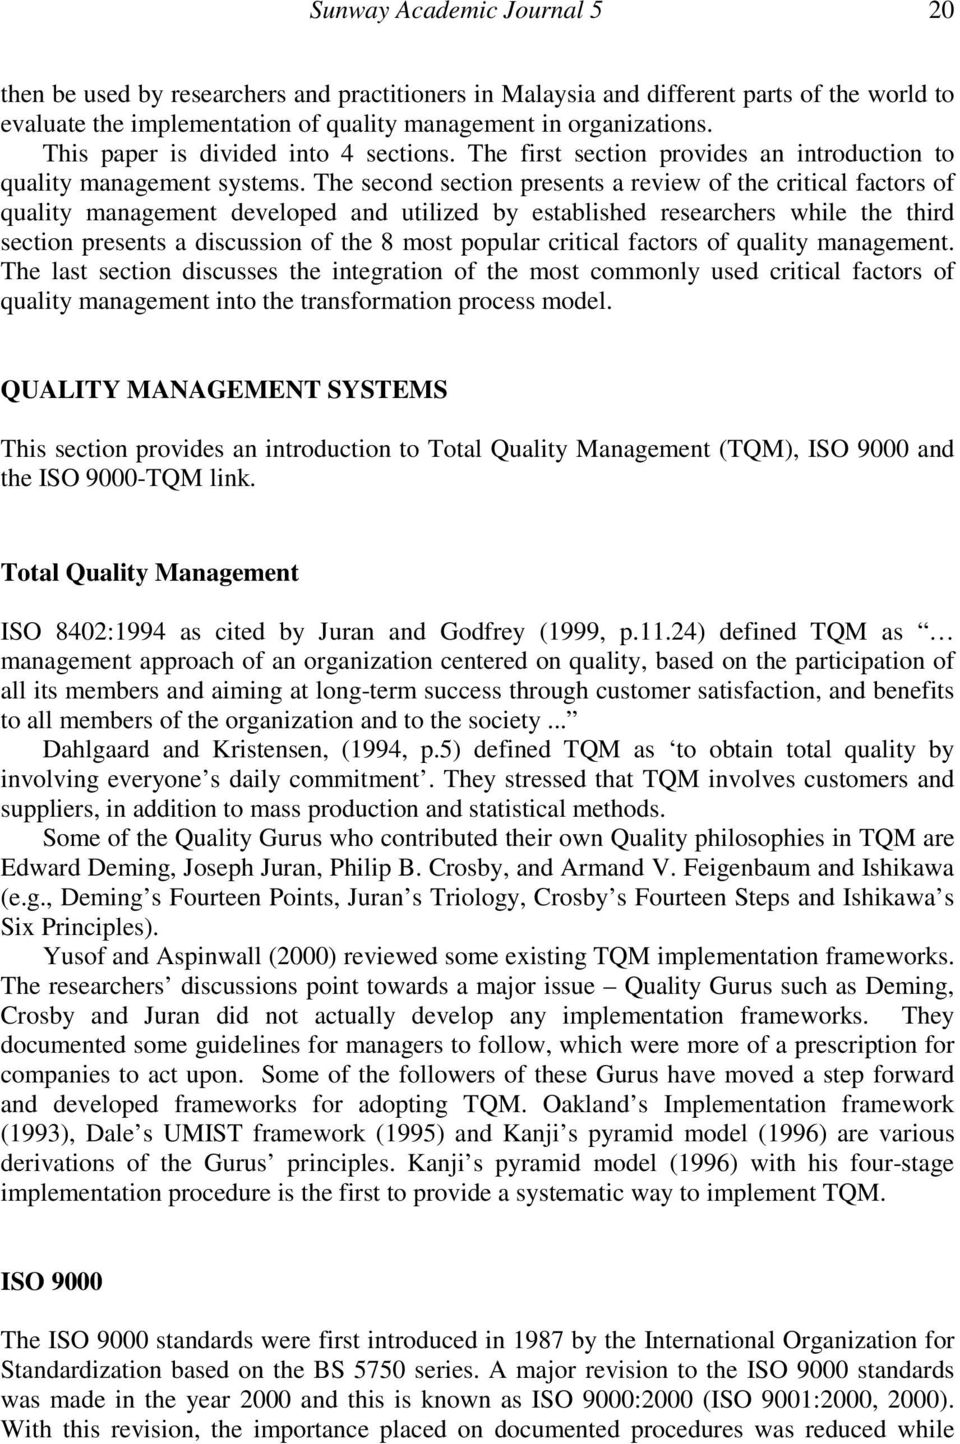 The second section presents a review of the critical factors of quality management developed and utilized by established researchers while the third section presents a discussion of the 8 most